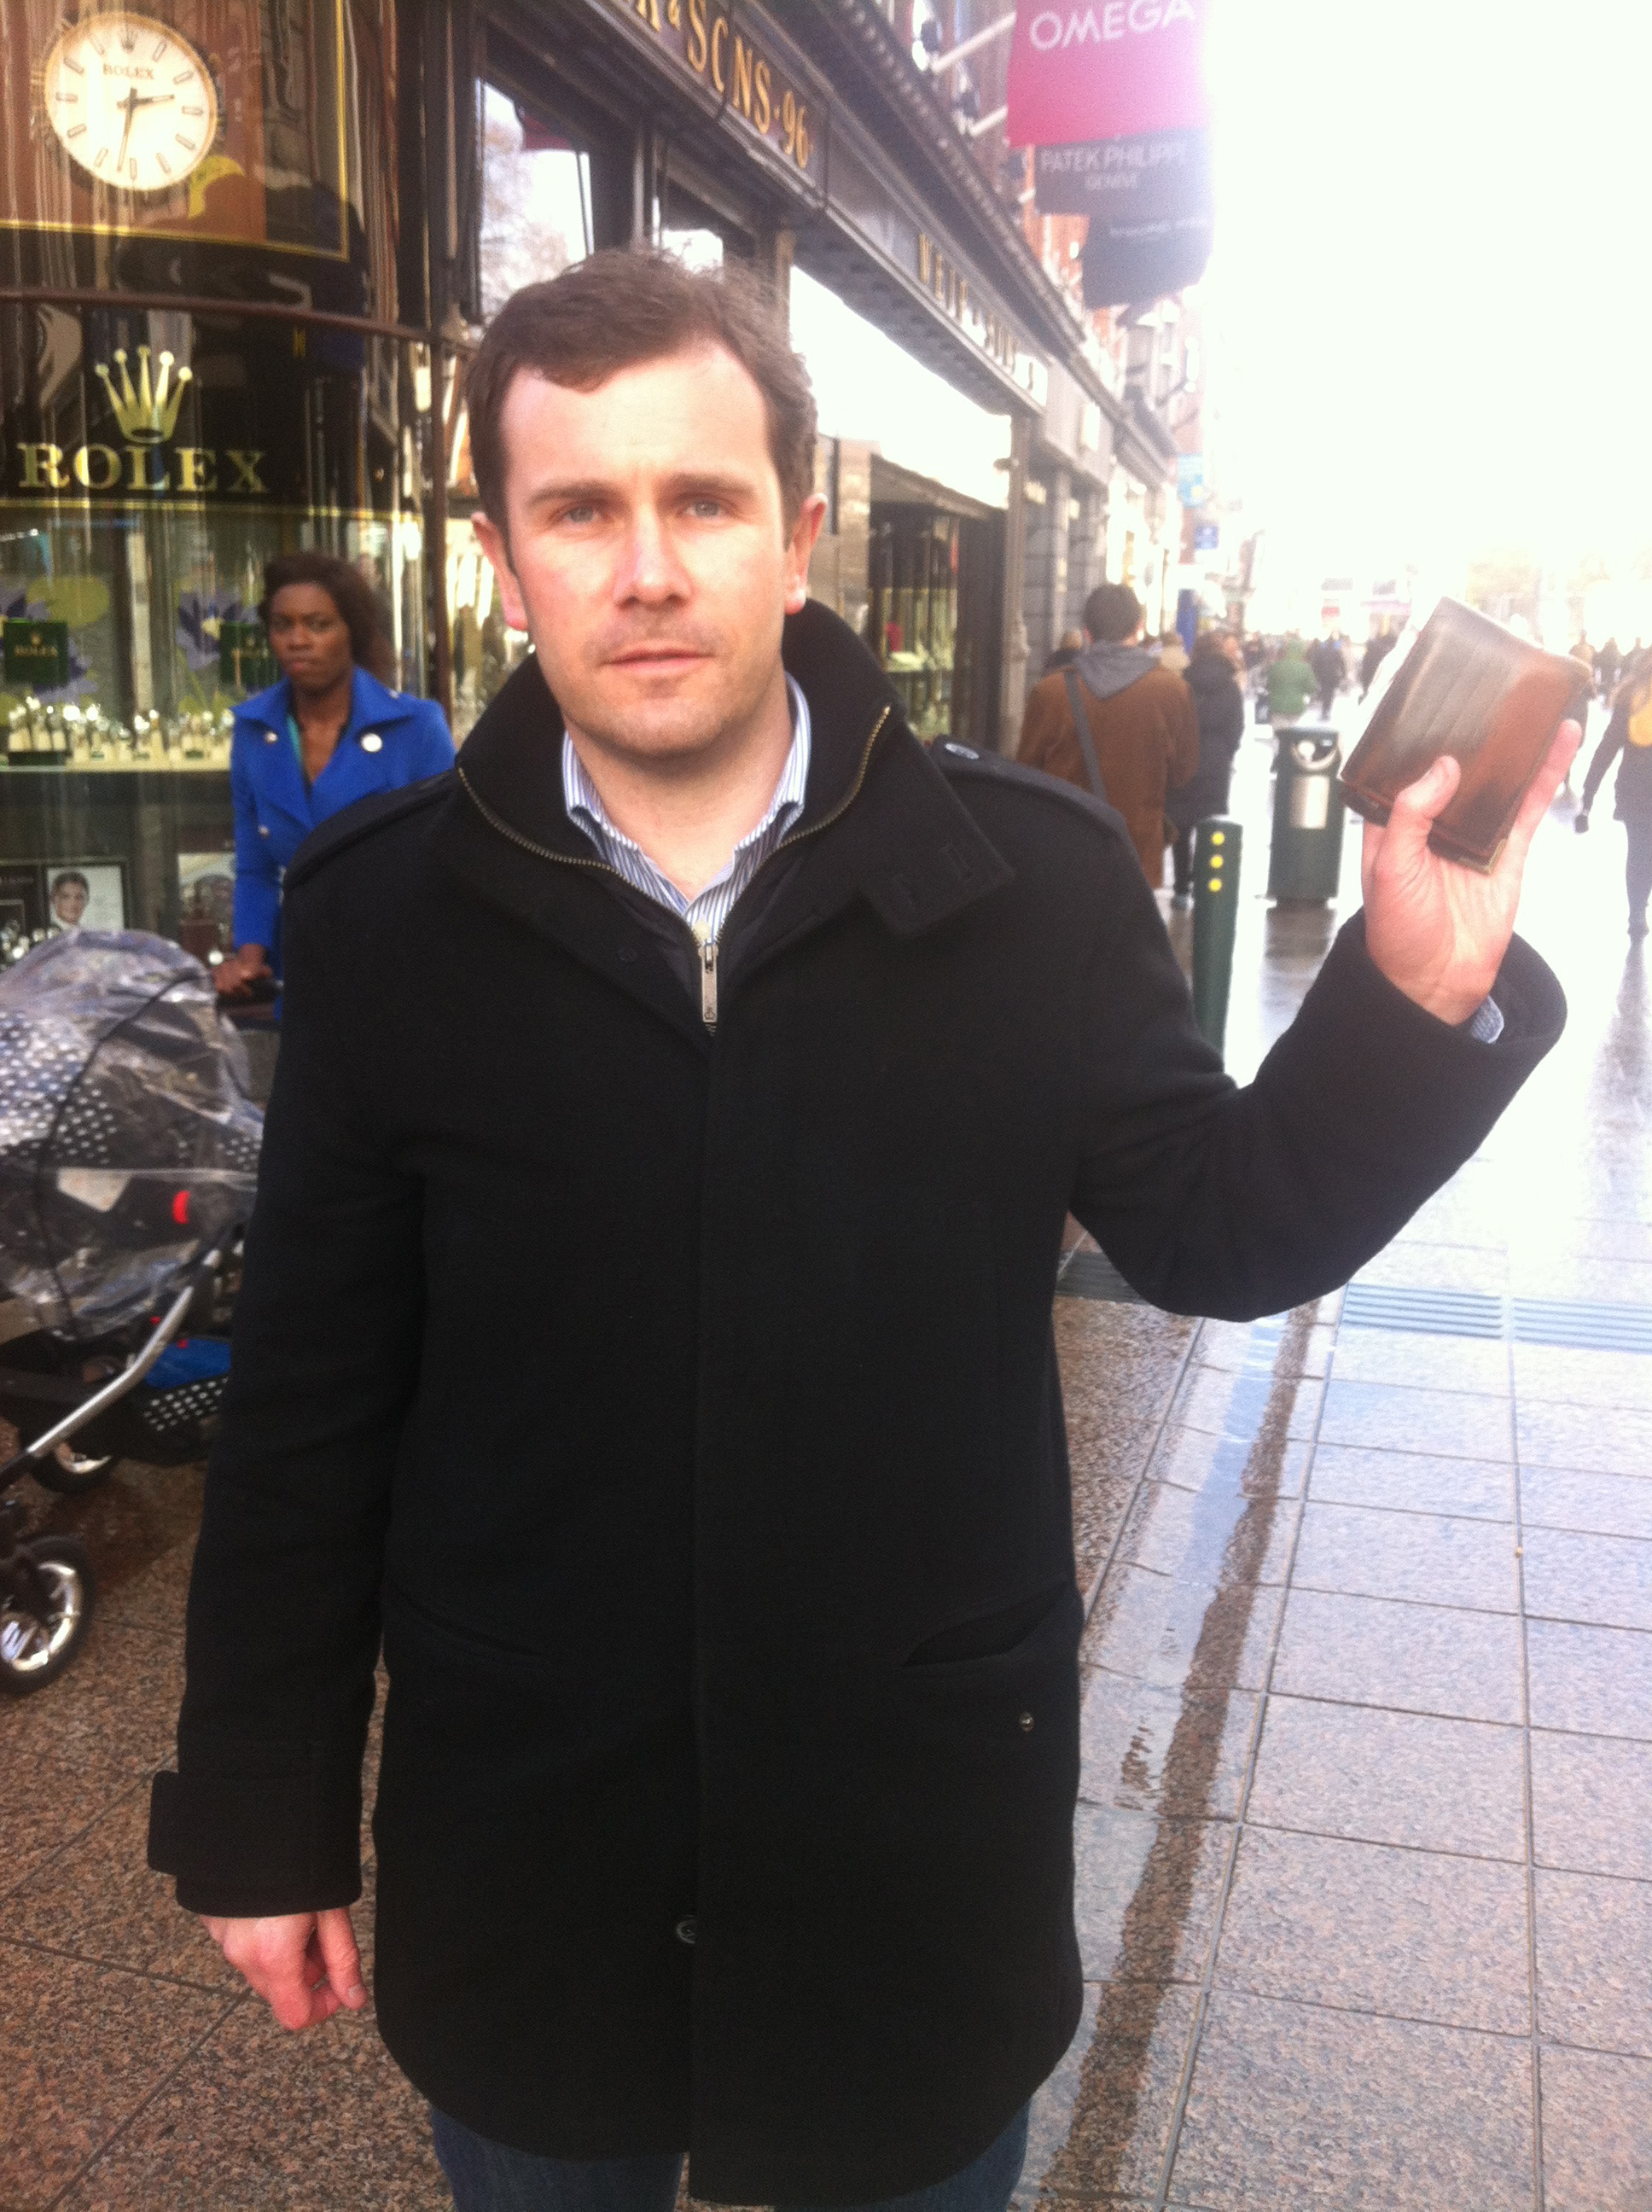 Dishonest Dublin? - Midweek investigates with special 'wallet drop' experiment.